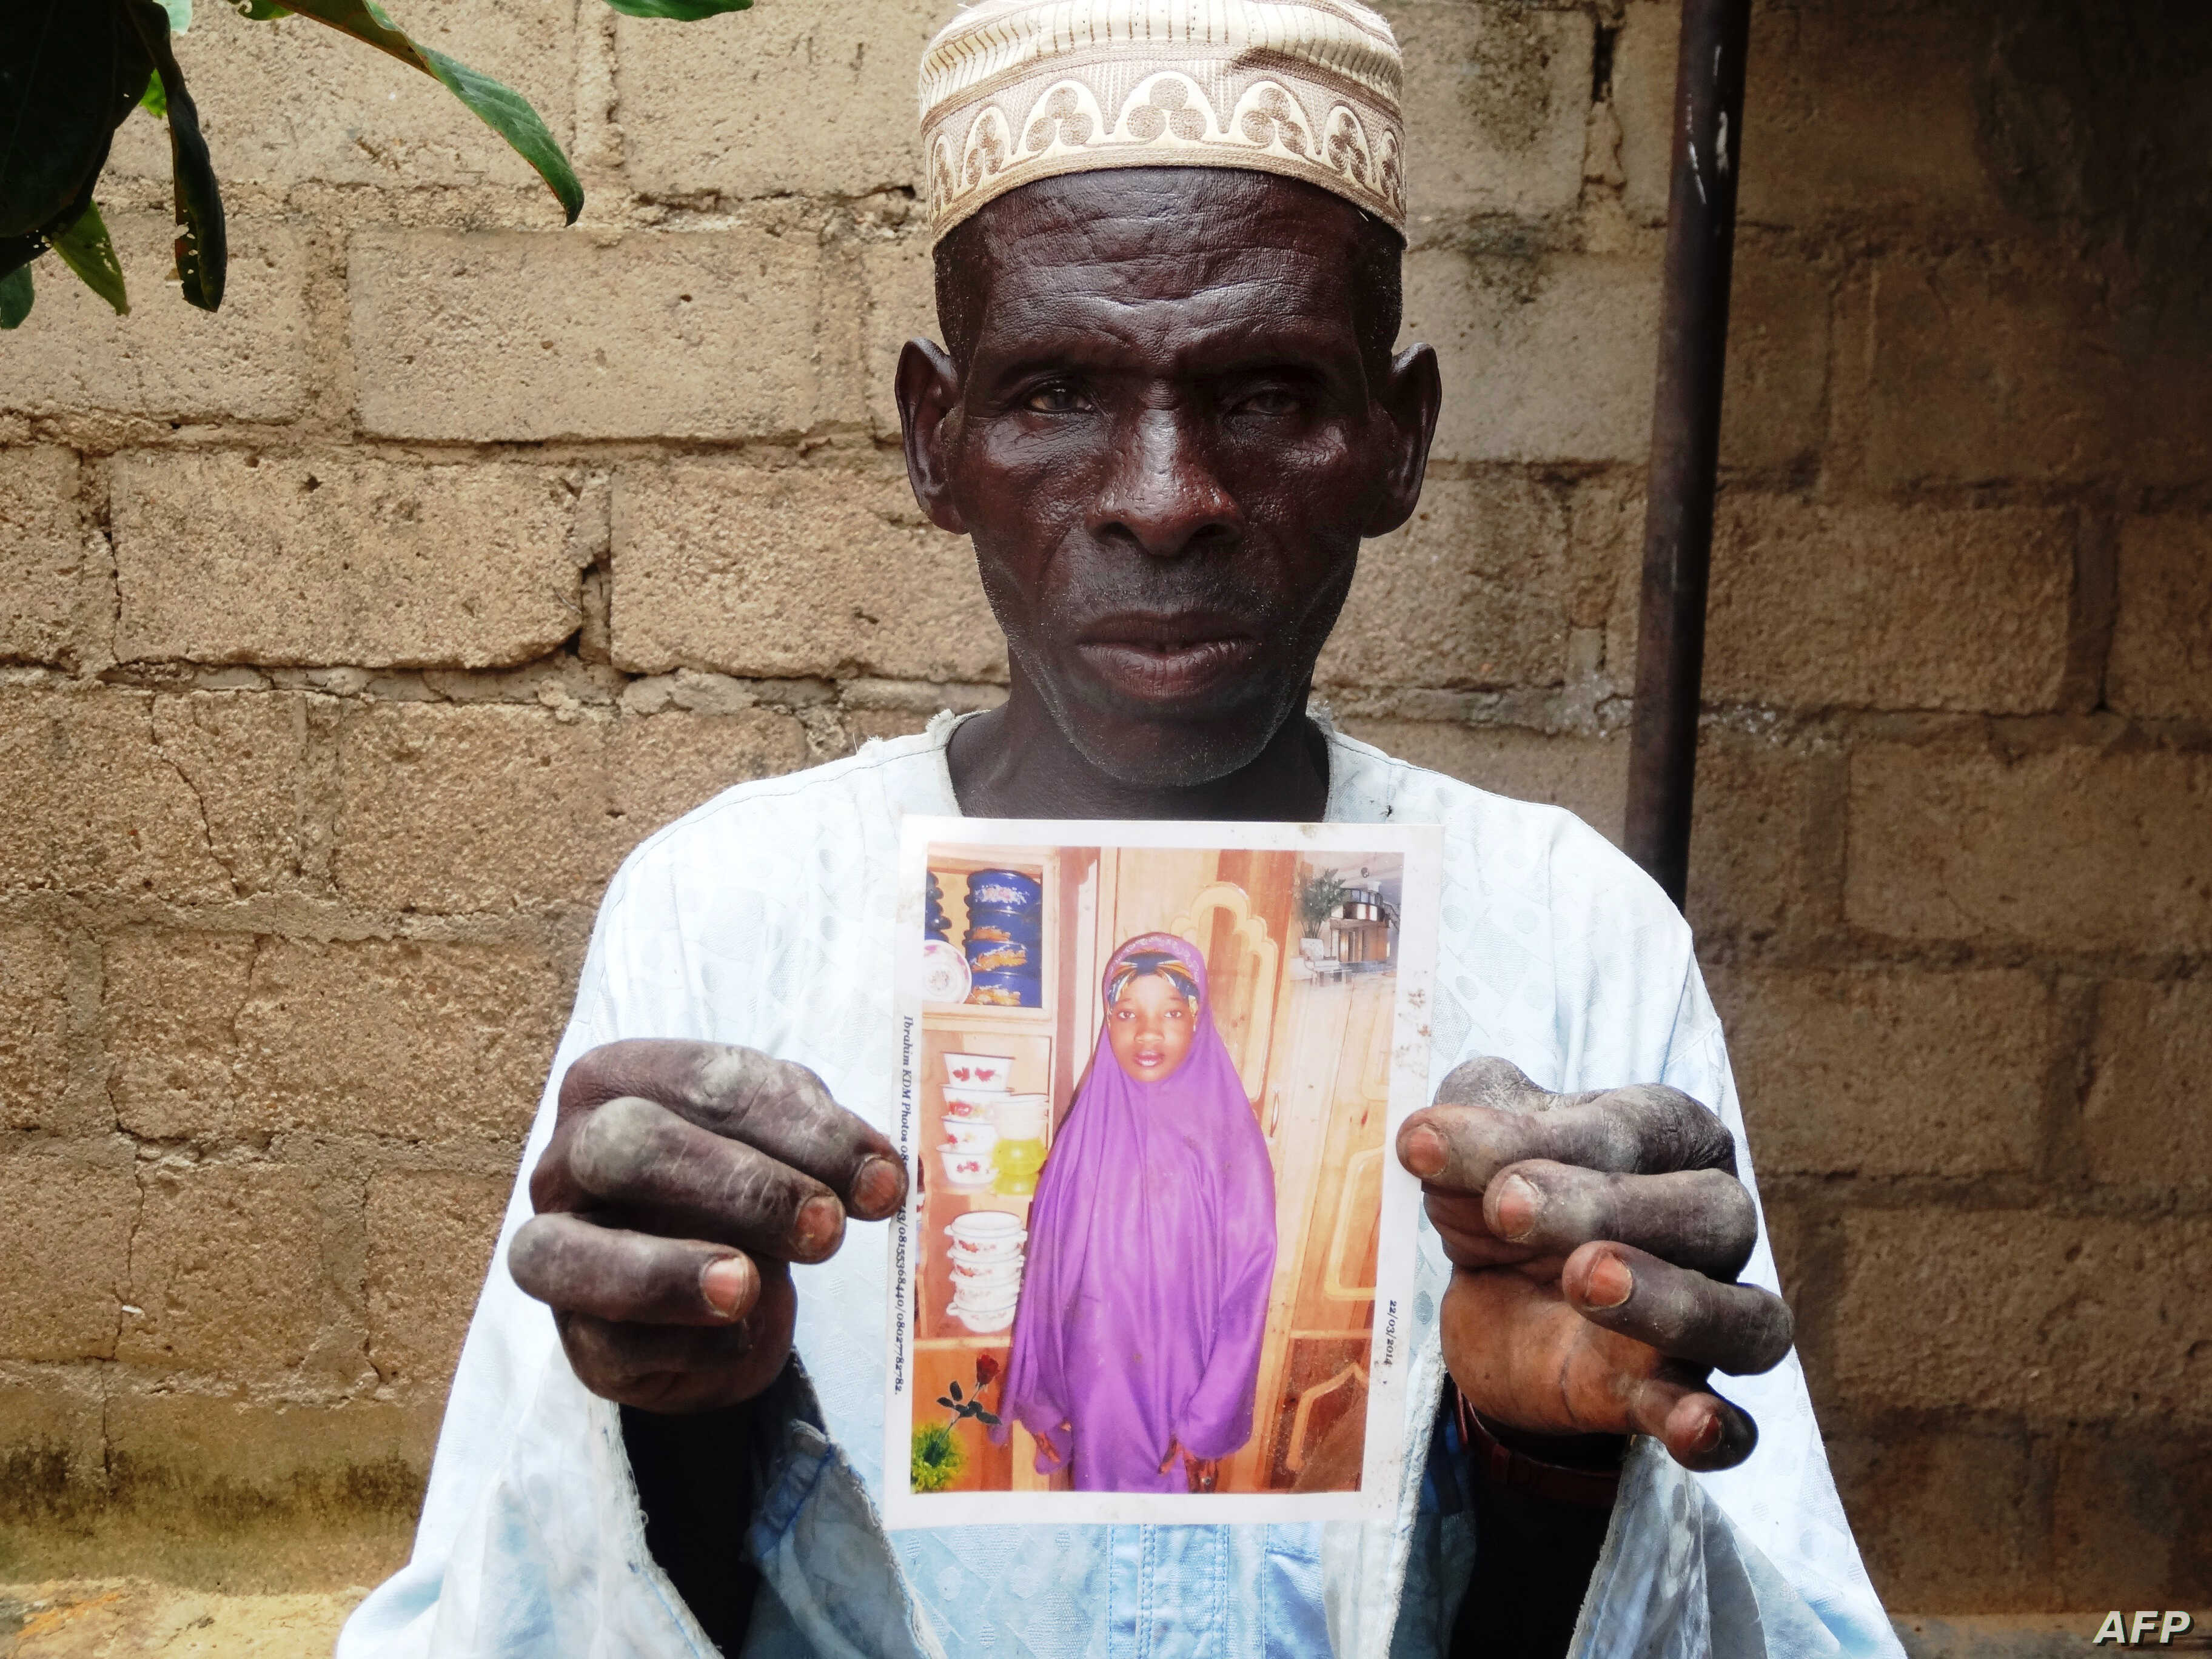 Nigerian Child Bride Accused of Killing Husband to Be Freed